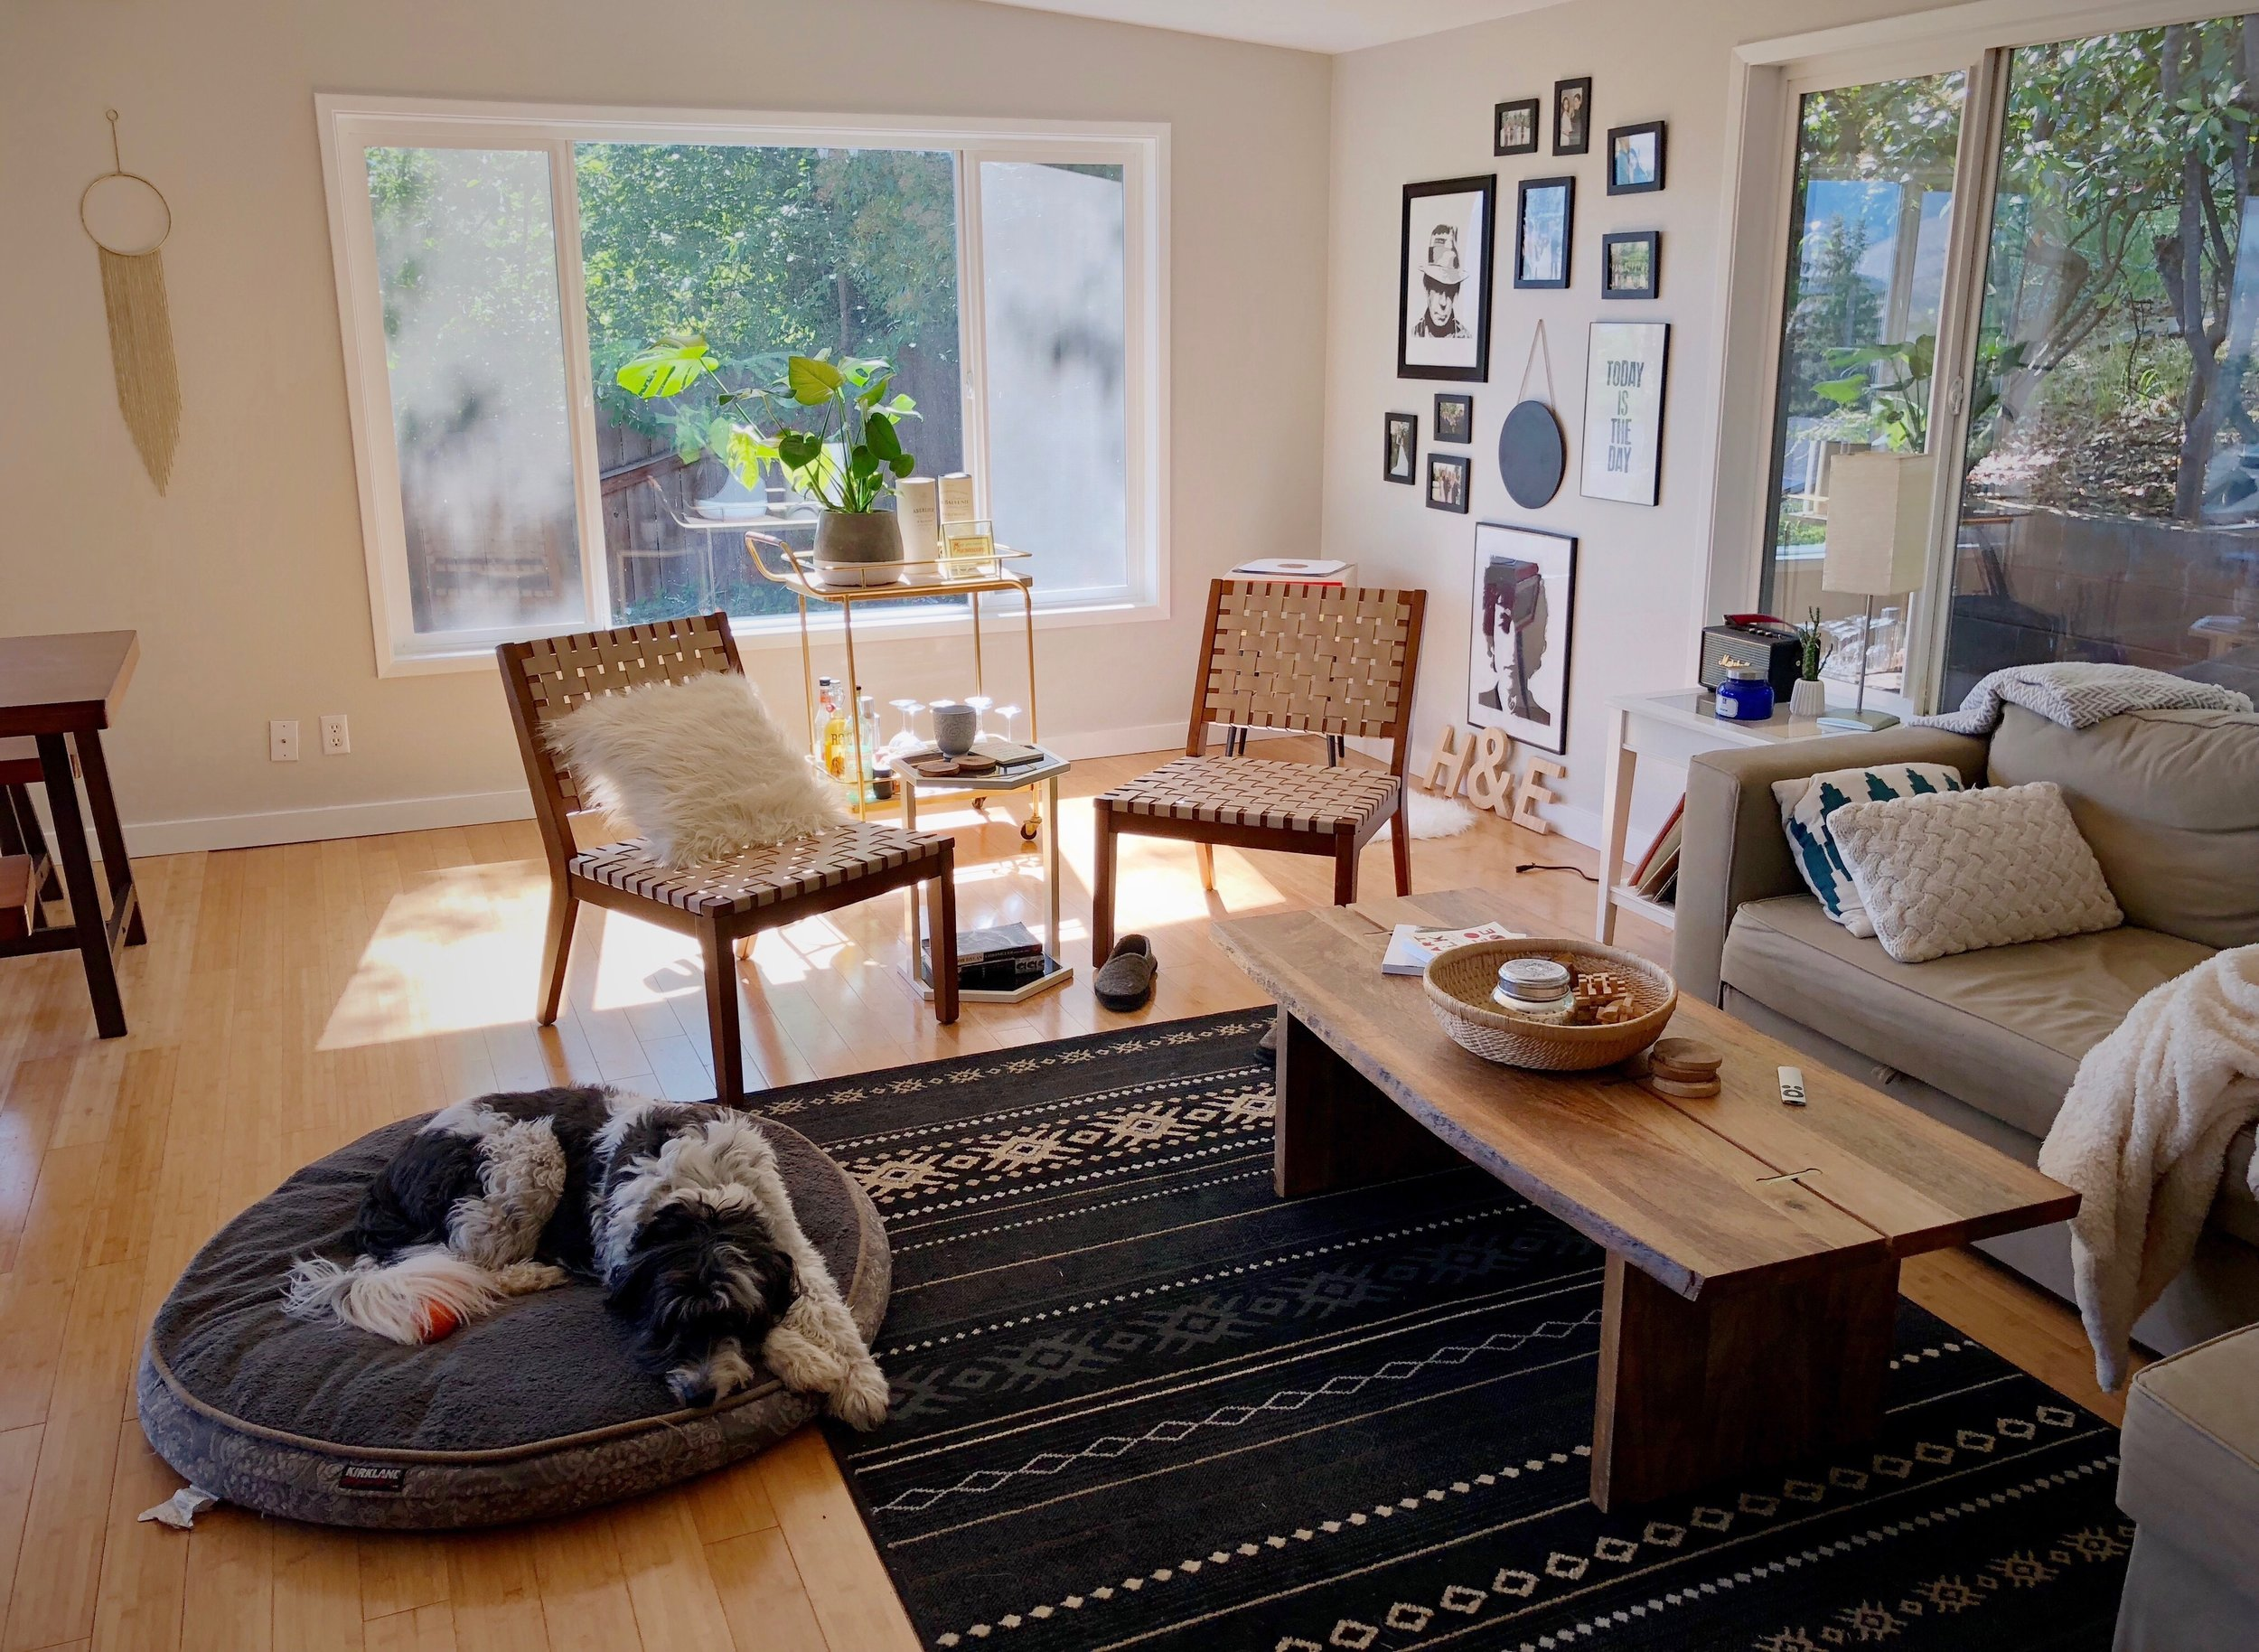 This house! So much natural light. Perfect for a lazy early morning with Tabor.